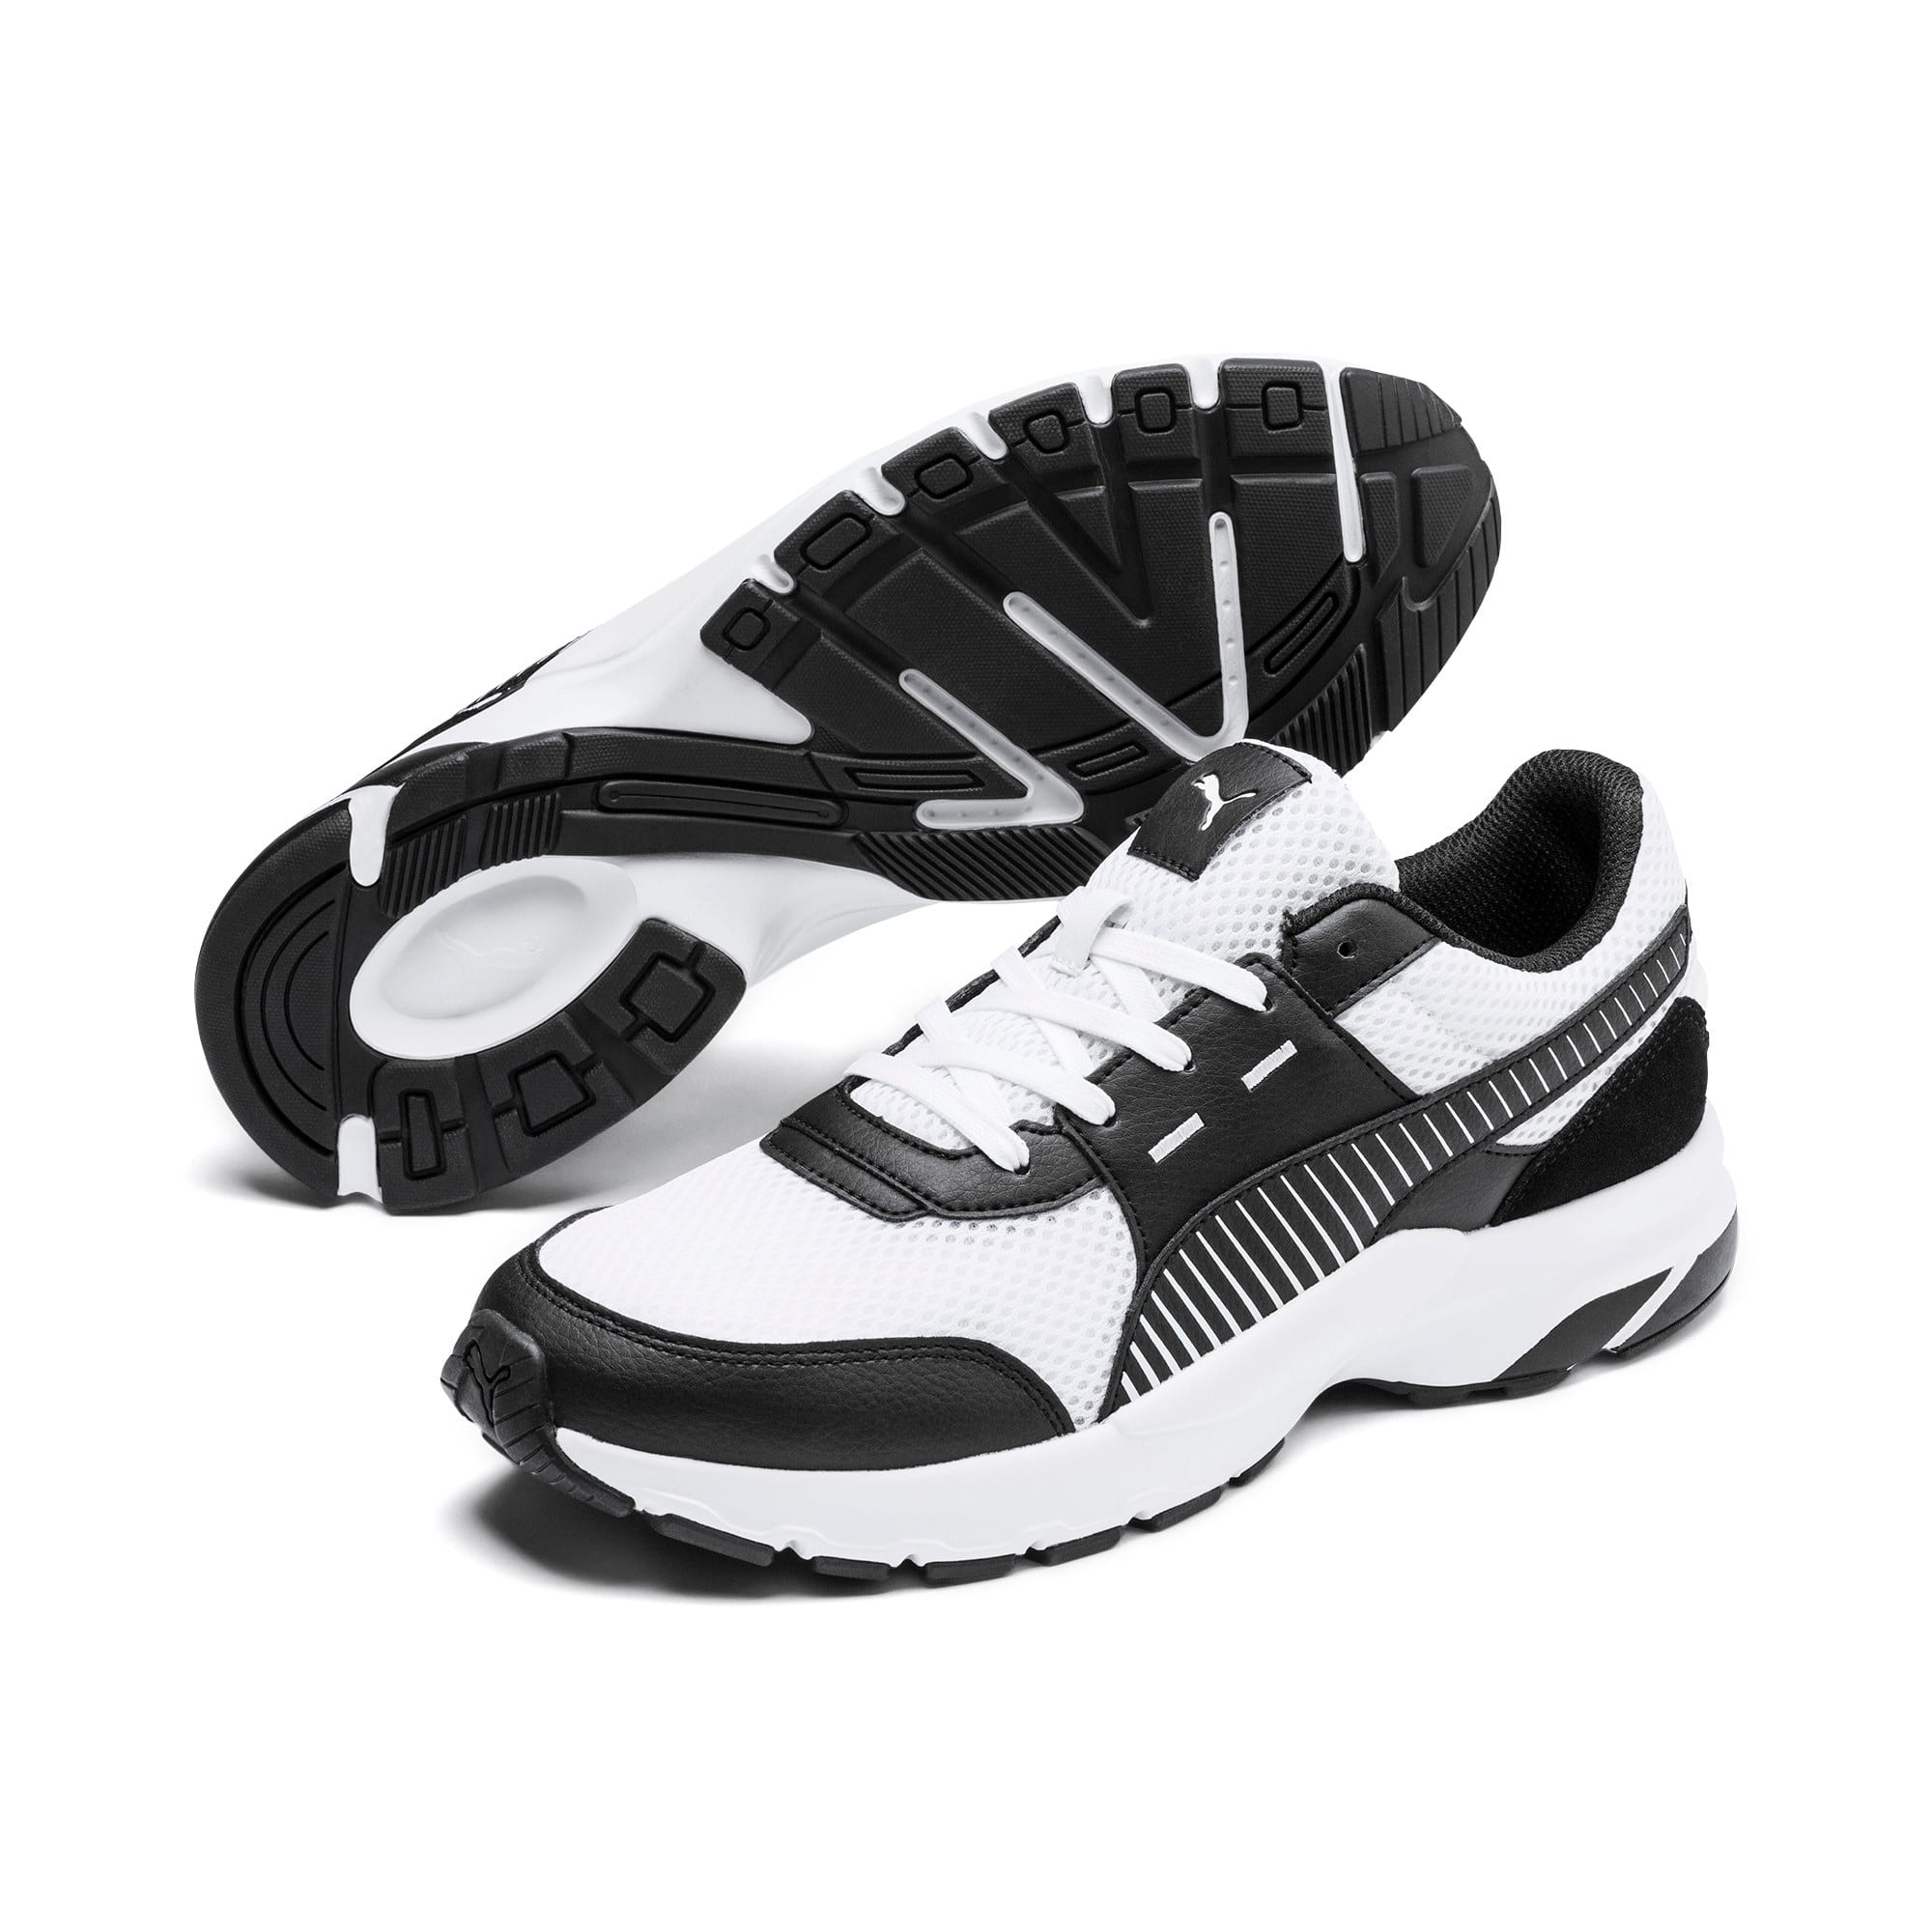 Thumbnail 3 of Future Runner Premium Laufschuhe, Puma White-Puma Black, medium